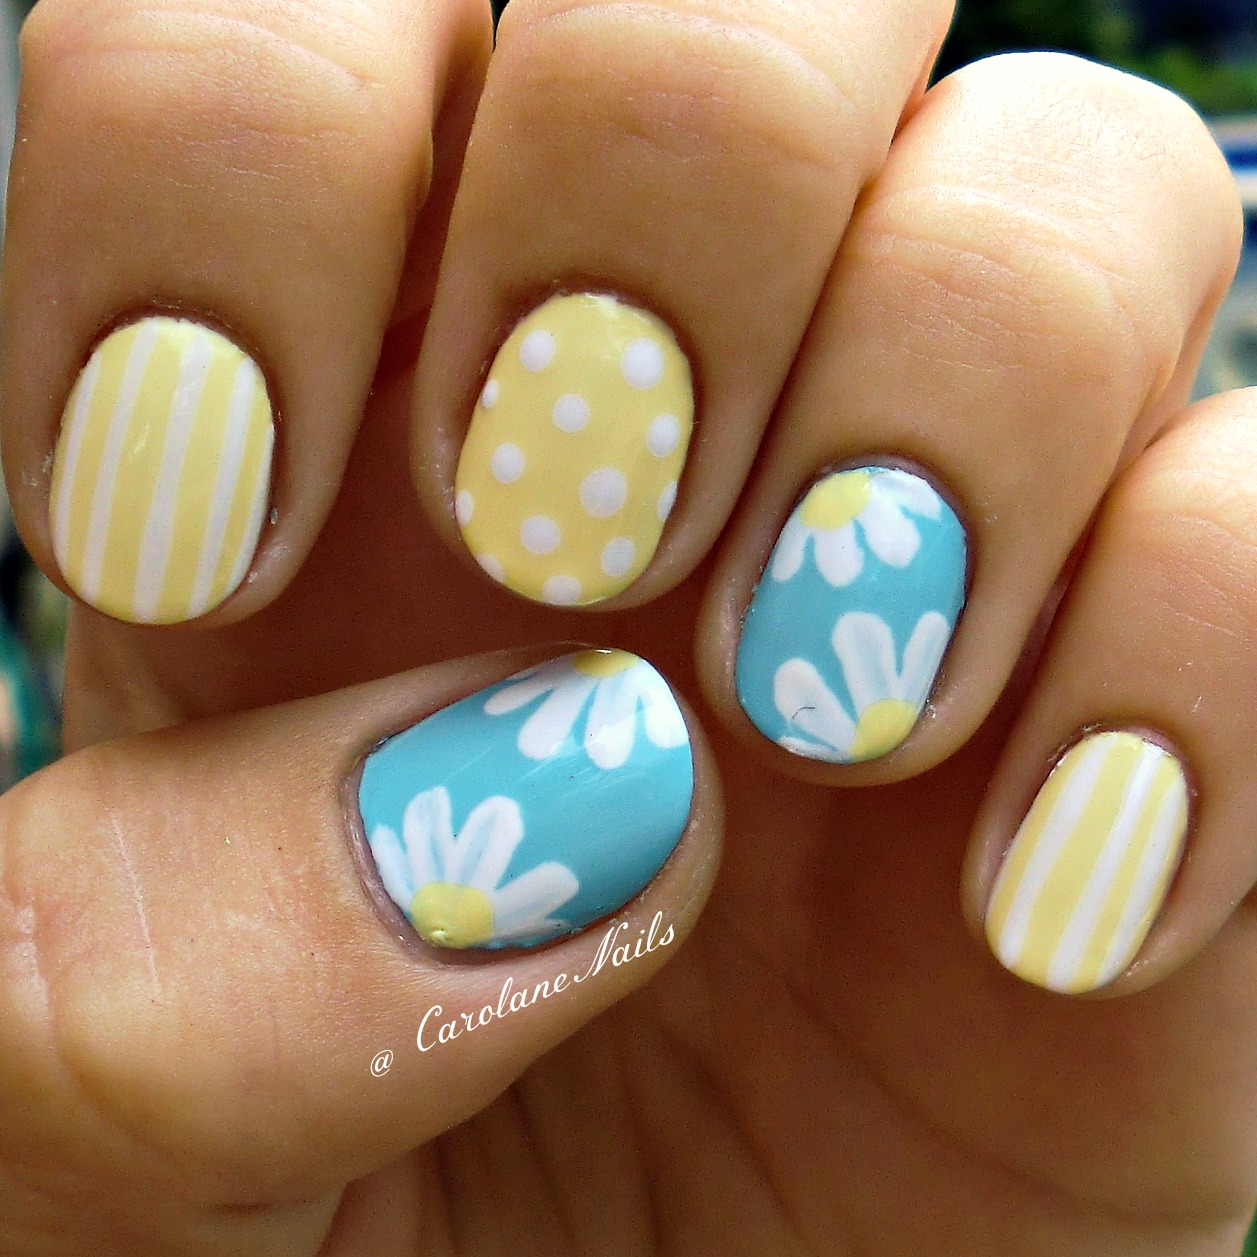 Girly Nail Art Designs: Best 25+ Summer Acrylic Nails Ideas On Pinterest